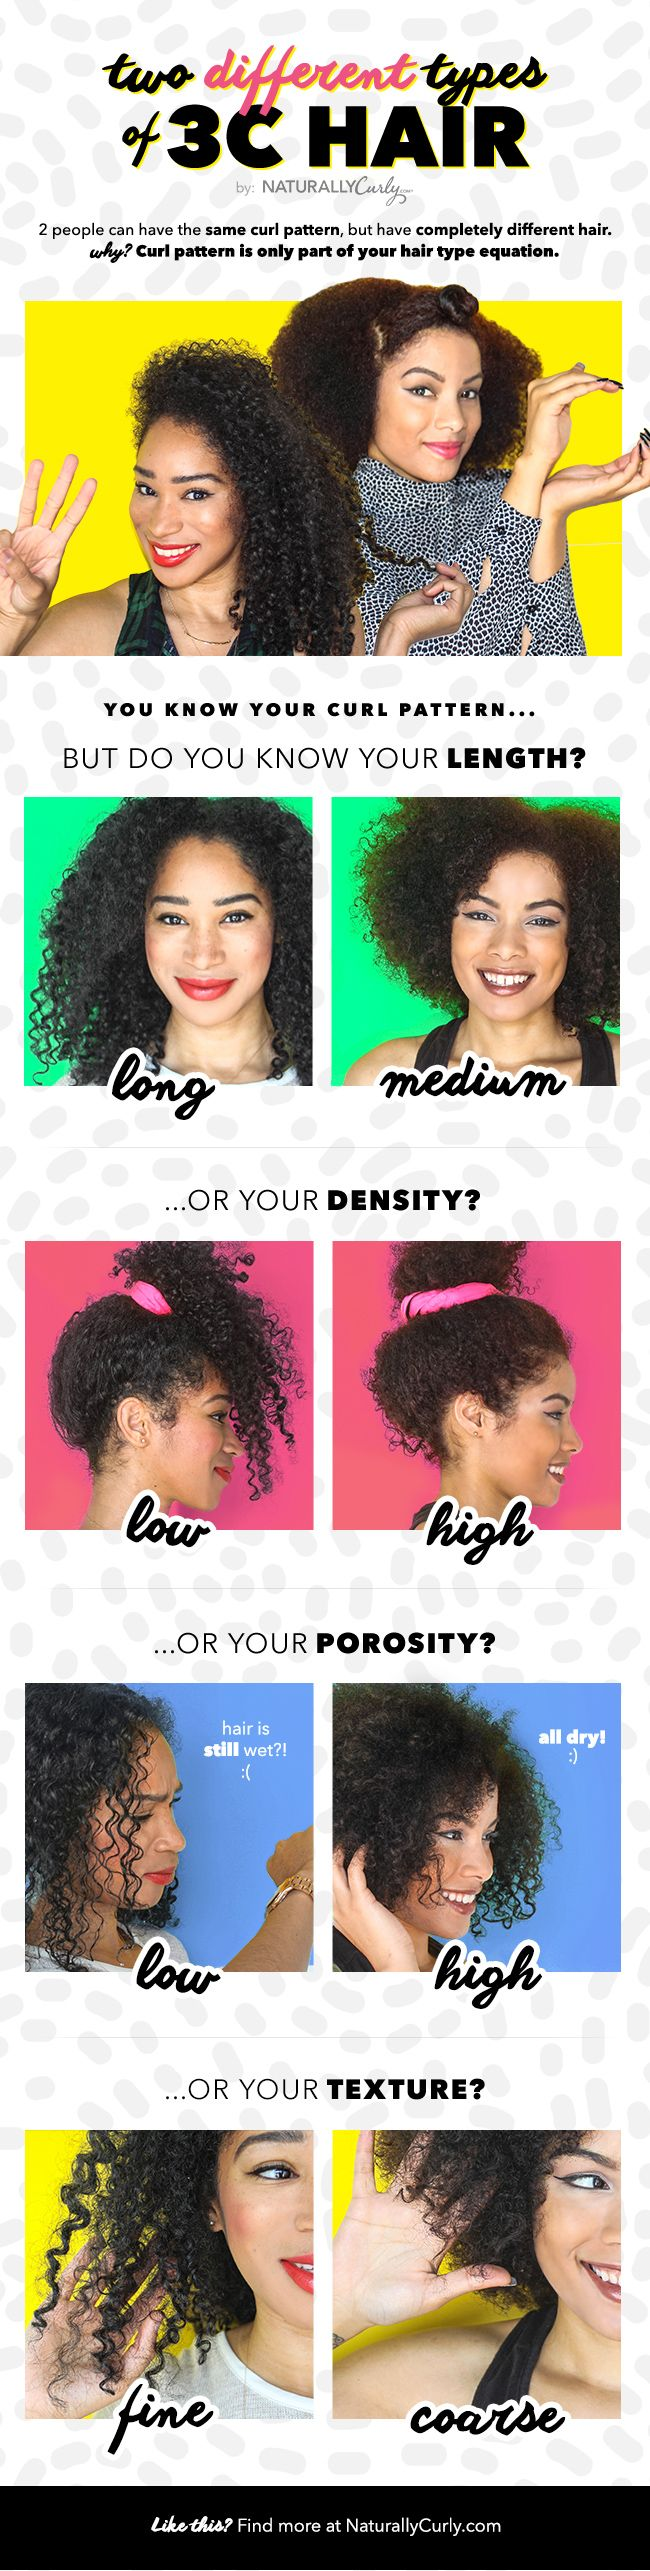 Why Your Curls Don T Look Like Hers Even Though You Re The Same Curl Pattern Natural Hair Styles Curly Hair Styles Curly Hair Tips